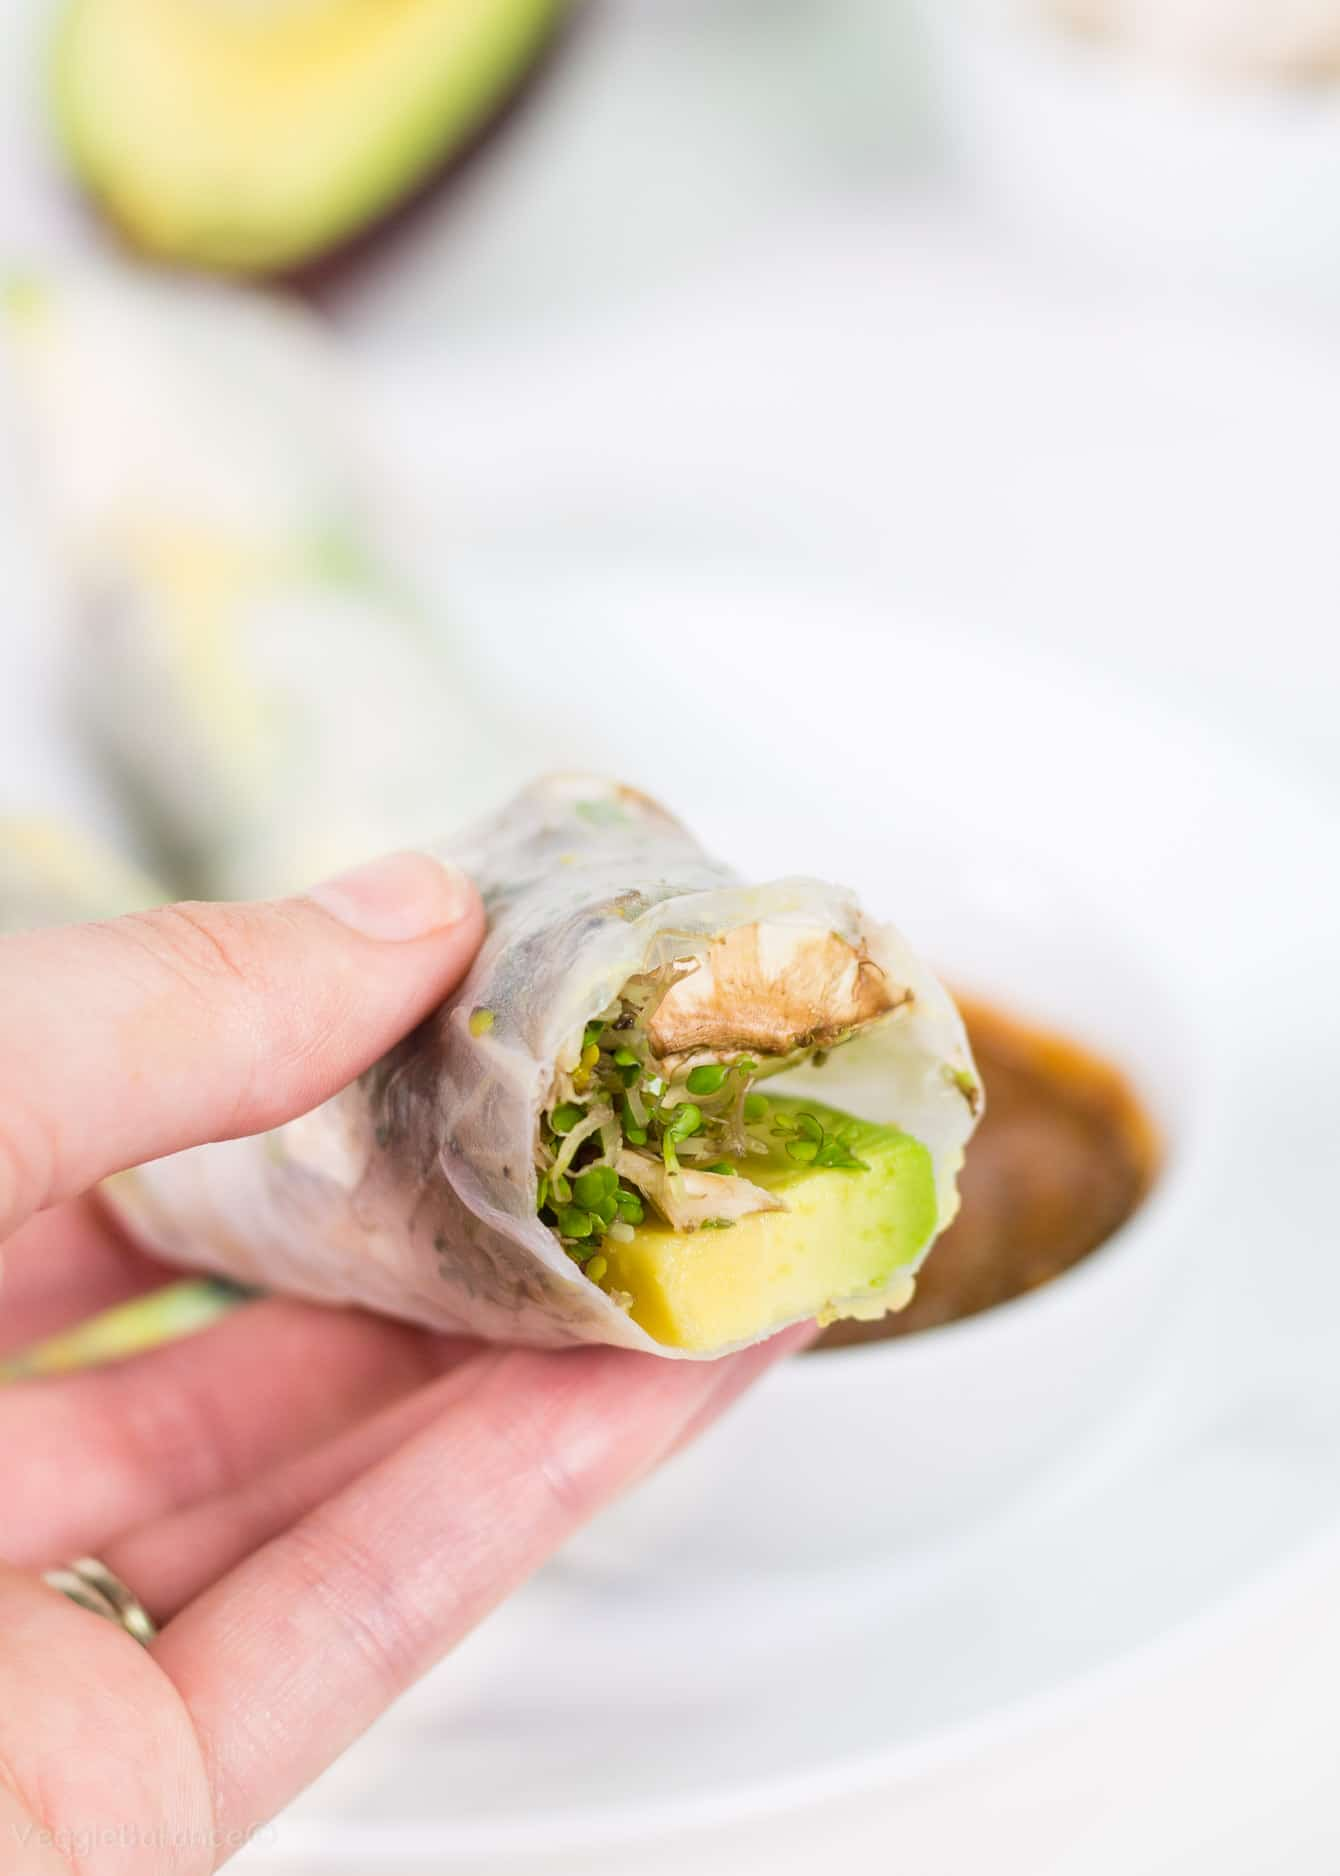 Fresh Spring Rolls with Avocado and Thai Peanut Dipping Sauce